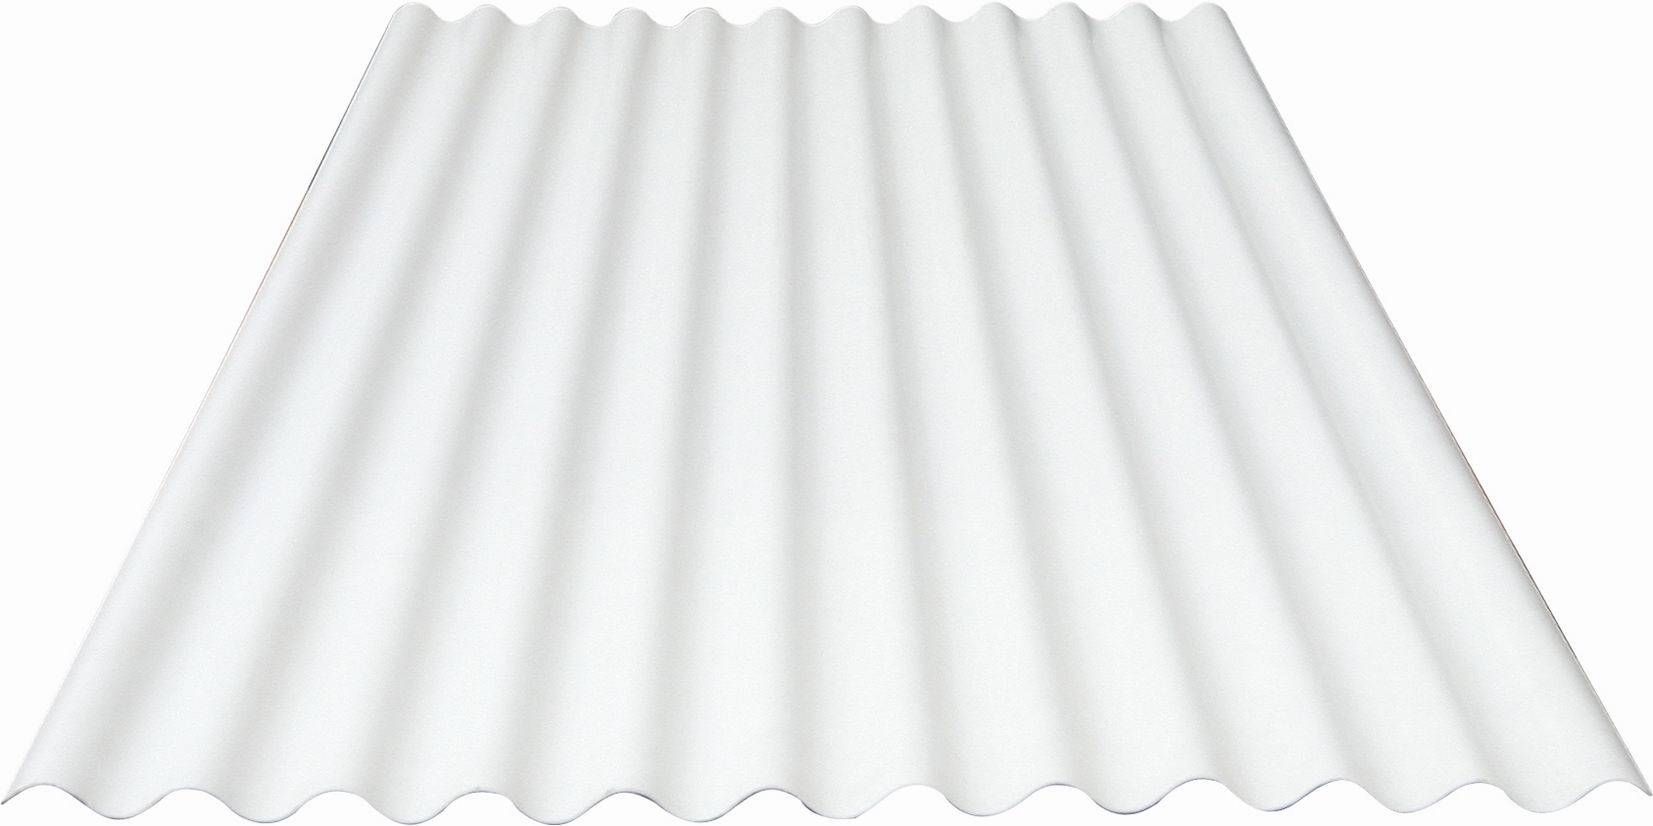 Sell Corrugated Pvc Roofing Sheets Manufacturer Supplier